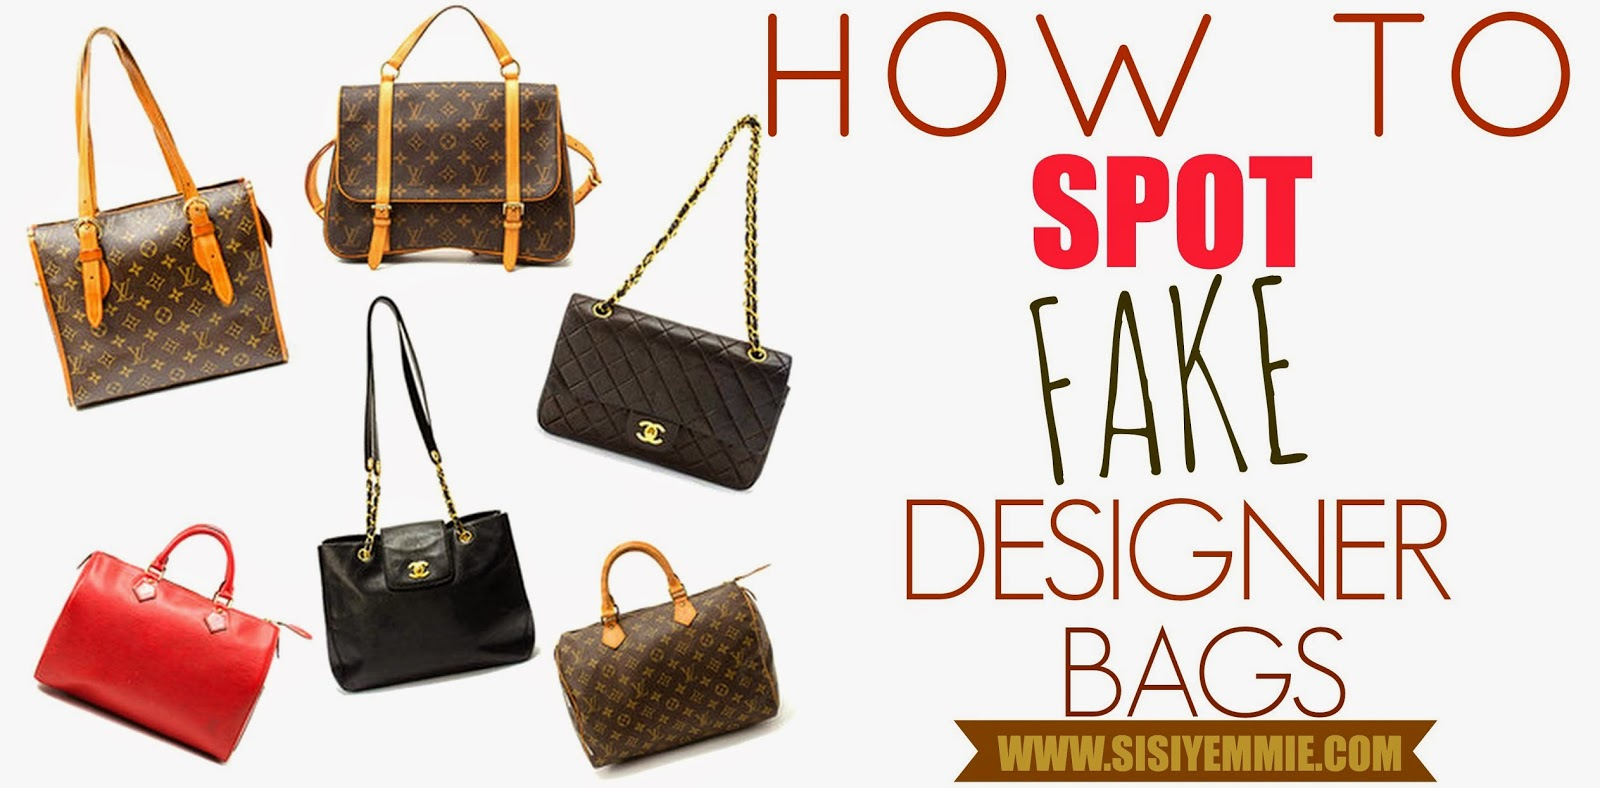 Forum on this topic: How to Tell if a Handbag Is , how-to-tell-if-a-handbag-is/